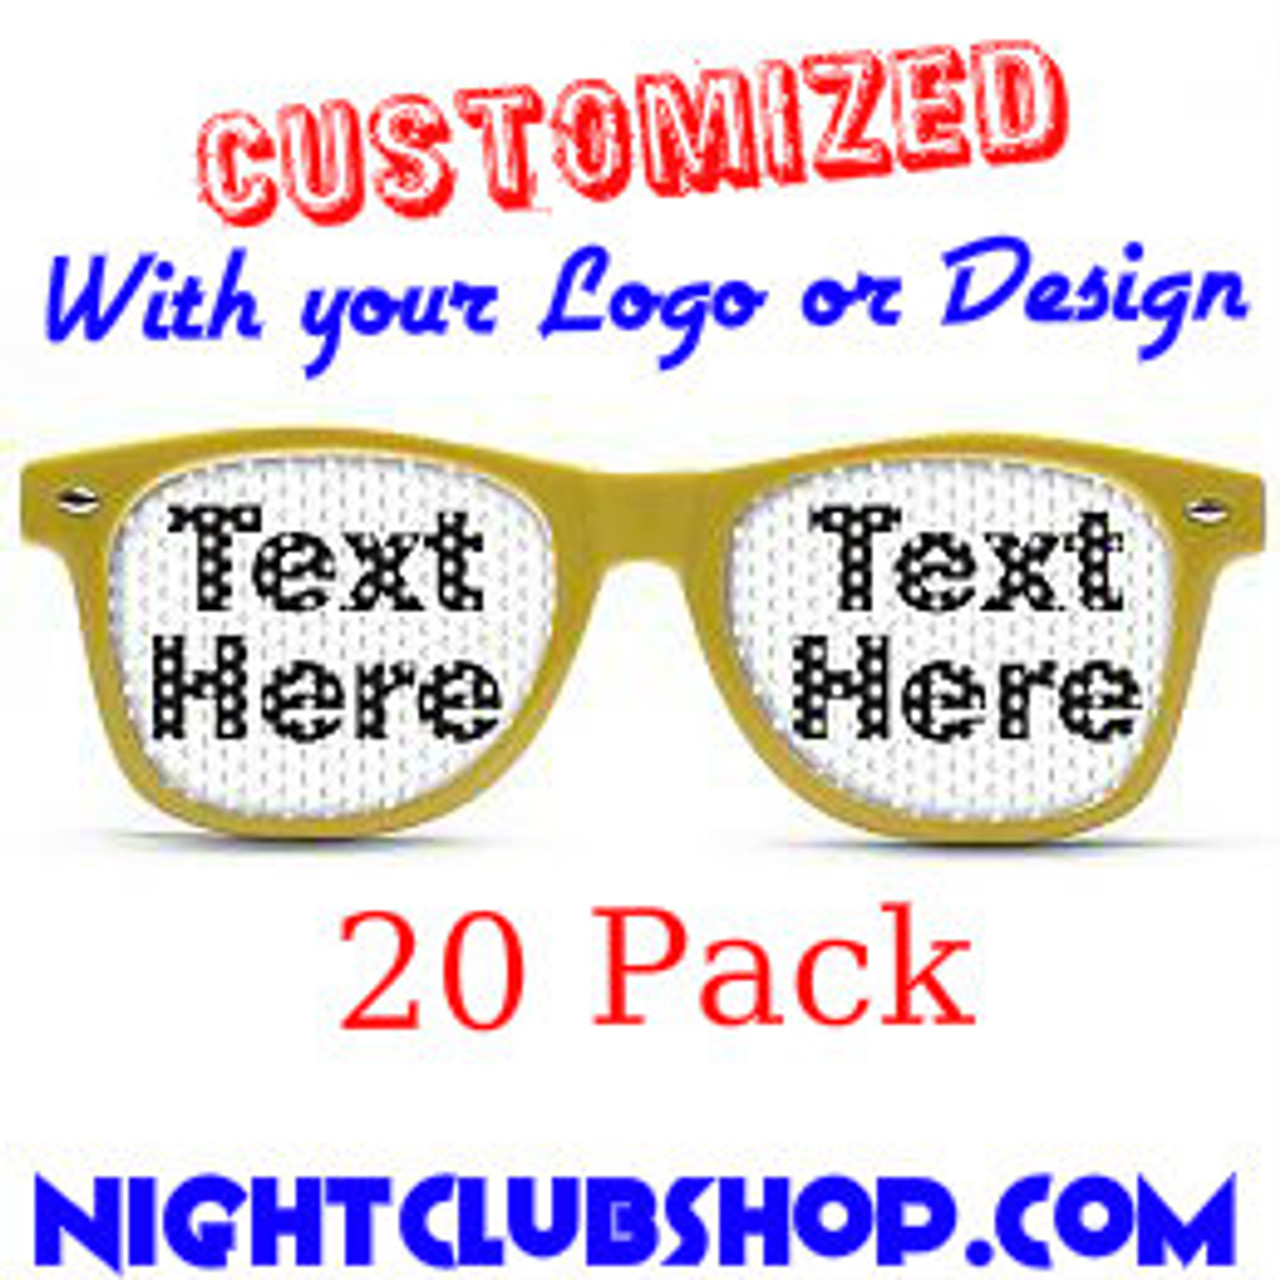 BRIDES MAID, MAID OF HONOR, GROOMSMEN, BEST MAN, WEDDING CUSTOM GLASSES, WEDDING GLASSES, BRIDE GLASSES, GROOM GLASSES, WEDDING GROOM, wayfarer, lens, glasses, shades, promotional, logo, iglazzis, conferences, advertise, club, bar, party, customize,wedding,wedding package, promovizion,promo vizion, groom,bride,best man, maid of honor, groomsman, custom glasses,custom, lenses,glasses, promo glasses, ,PromoVizion, Customizable, Personalized, Sunglasses, Lenses , Wayfare Lenses, Promo Lenses, Logo Lenses, Custom Lenses, Promo Glasses, Promo Vizion, Logolenses, Crystal Customs, iGlazzis, Personalized Glasses, Logo, Your text, 20 Pack, Bulk, DJALEX PROMO CODE, Nightclub Glasses, Glow in the dark, U.V. Reactive, GLOW